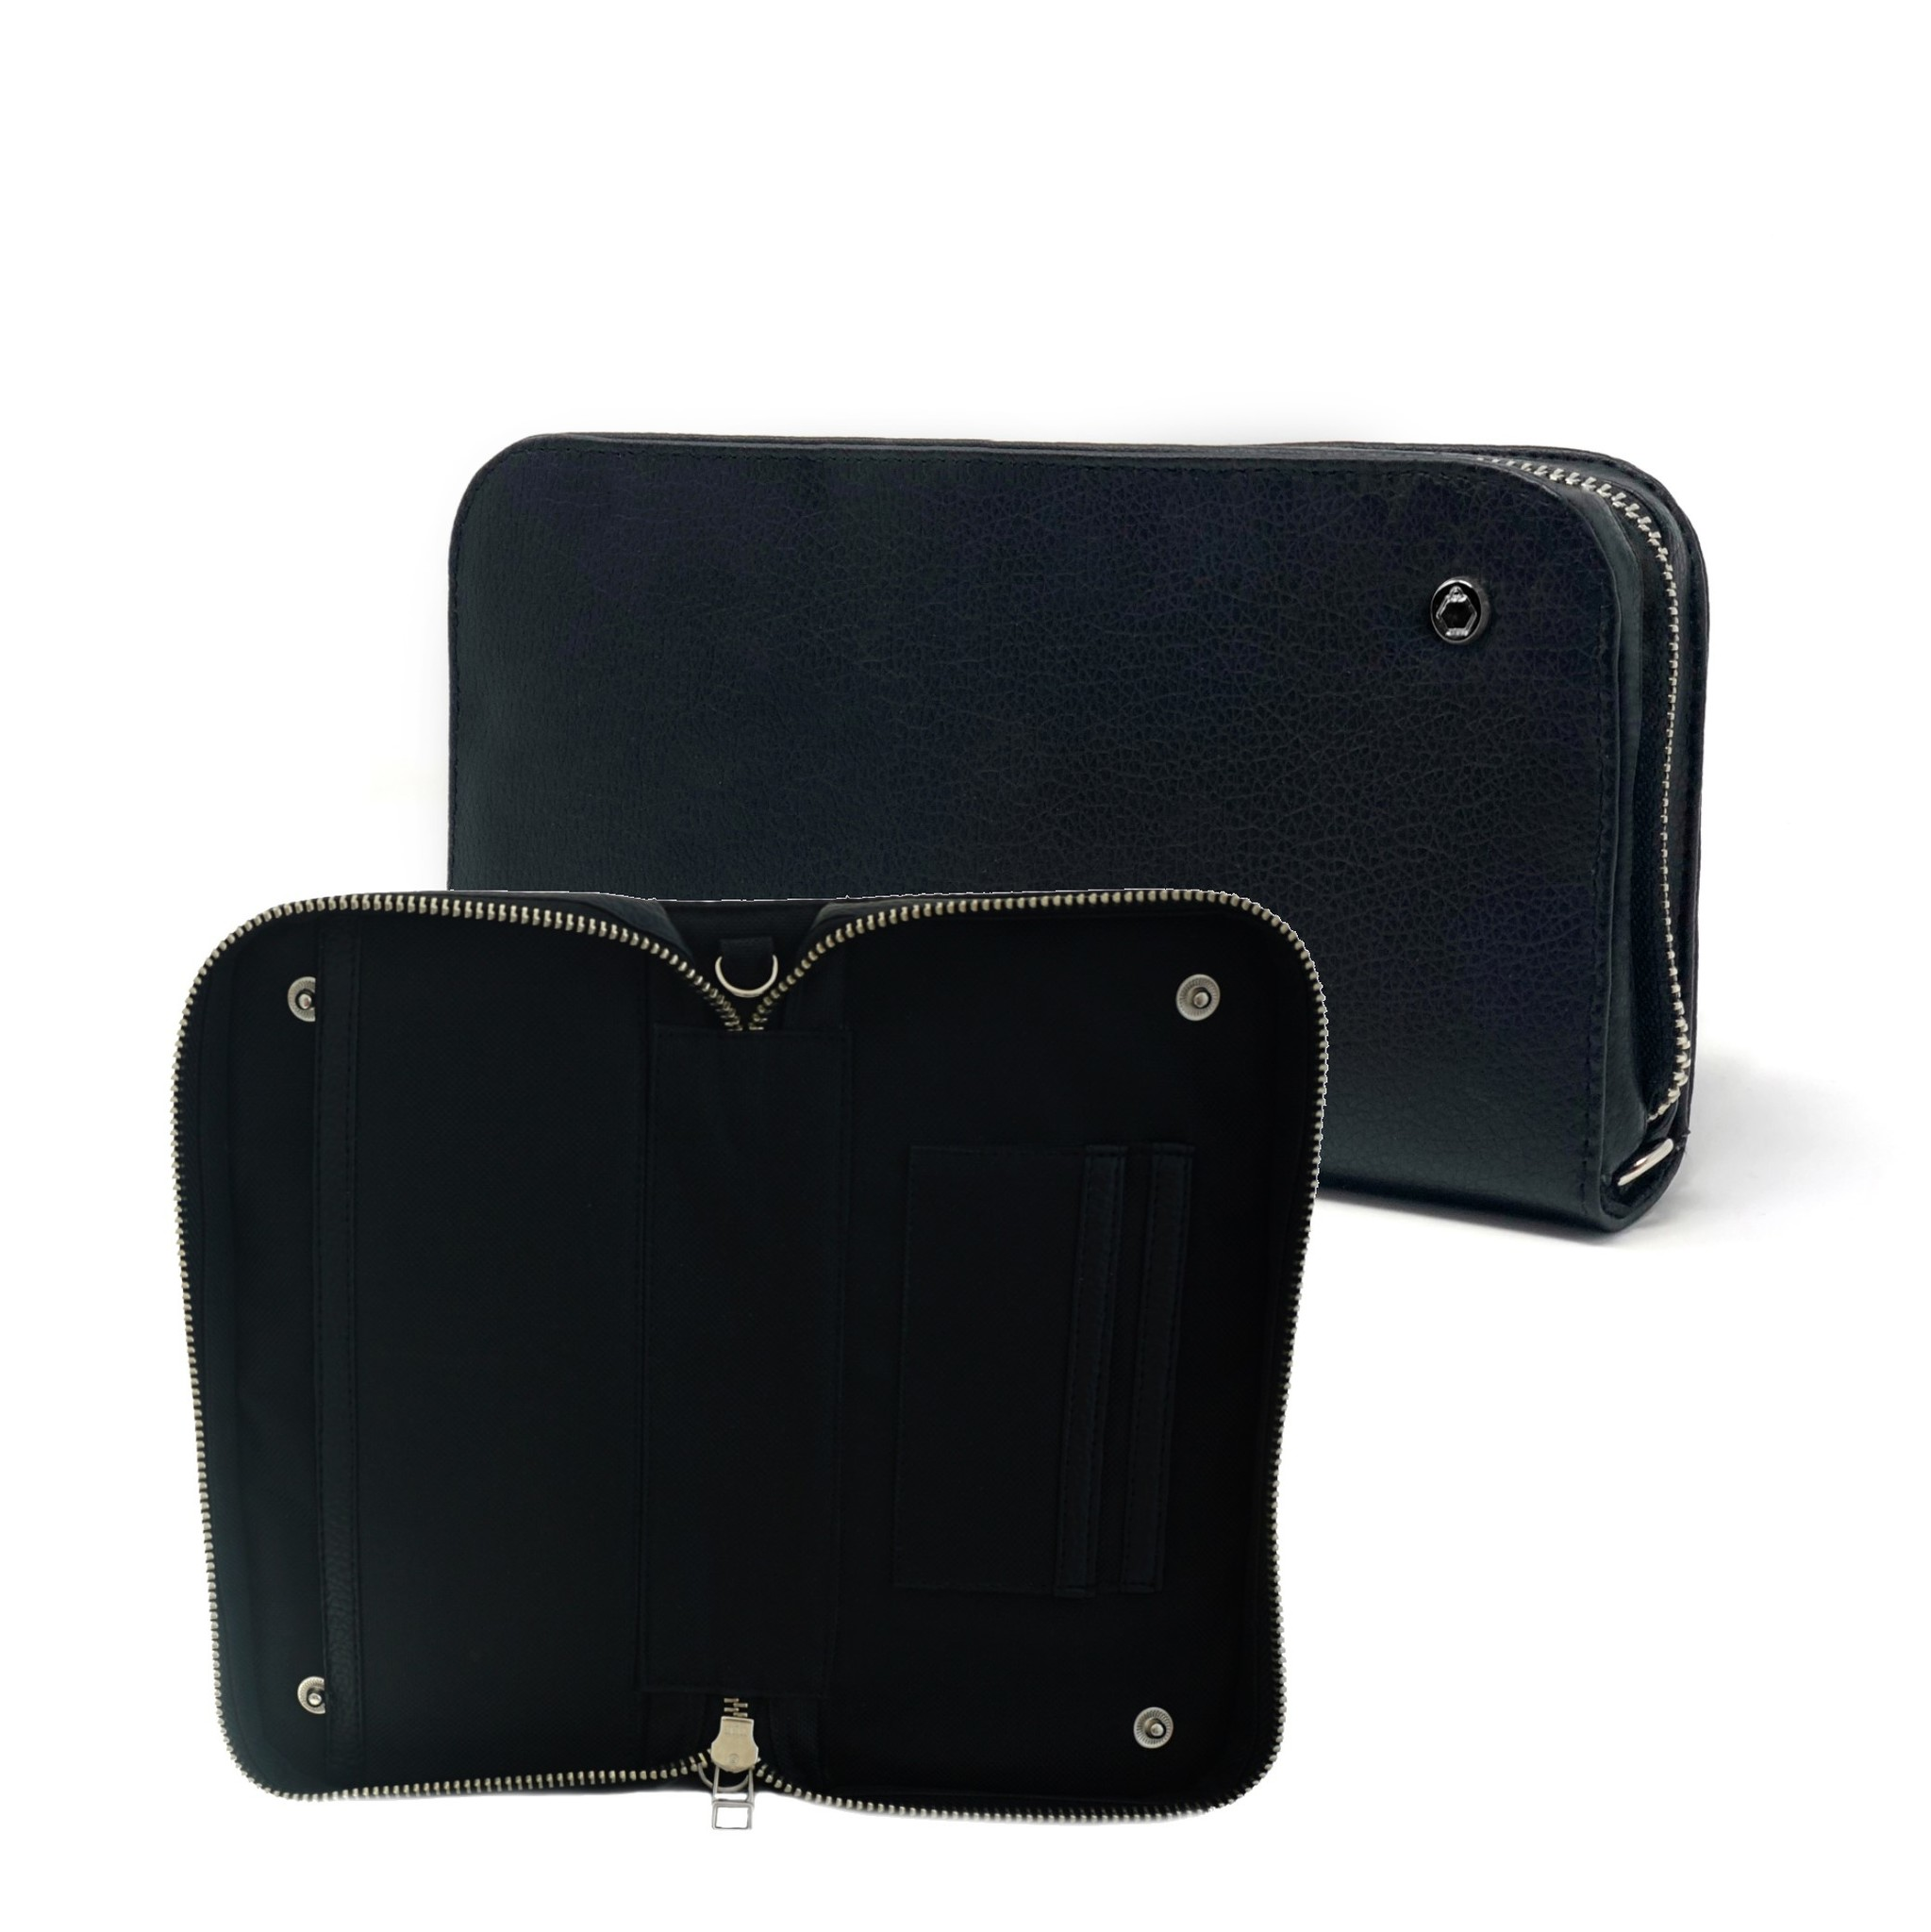 COVER ONLY - (COMBI) Noir-1